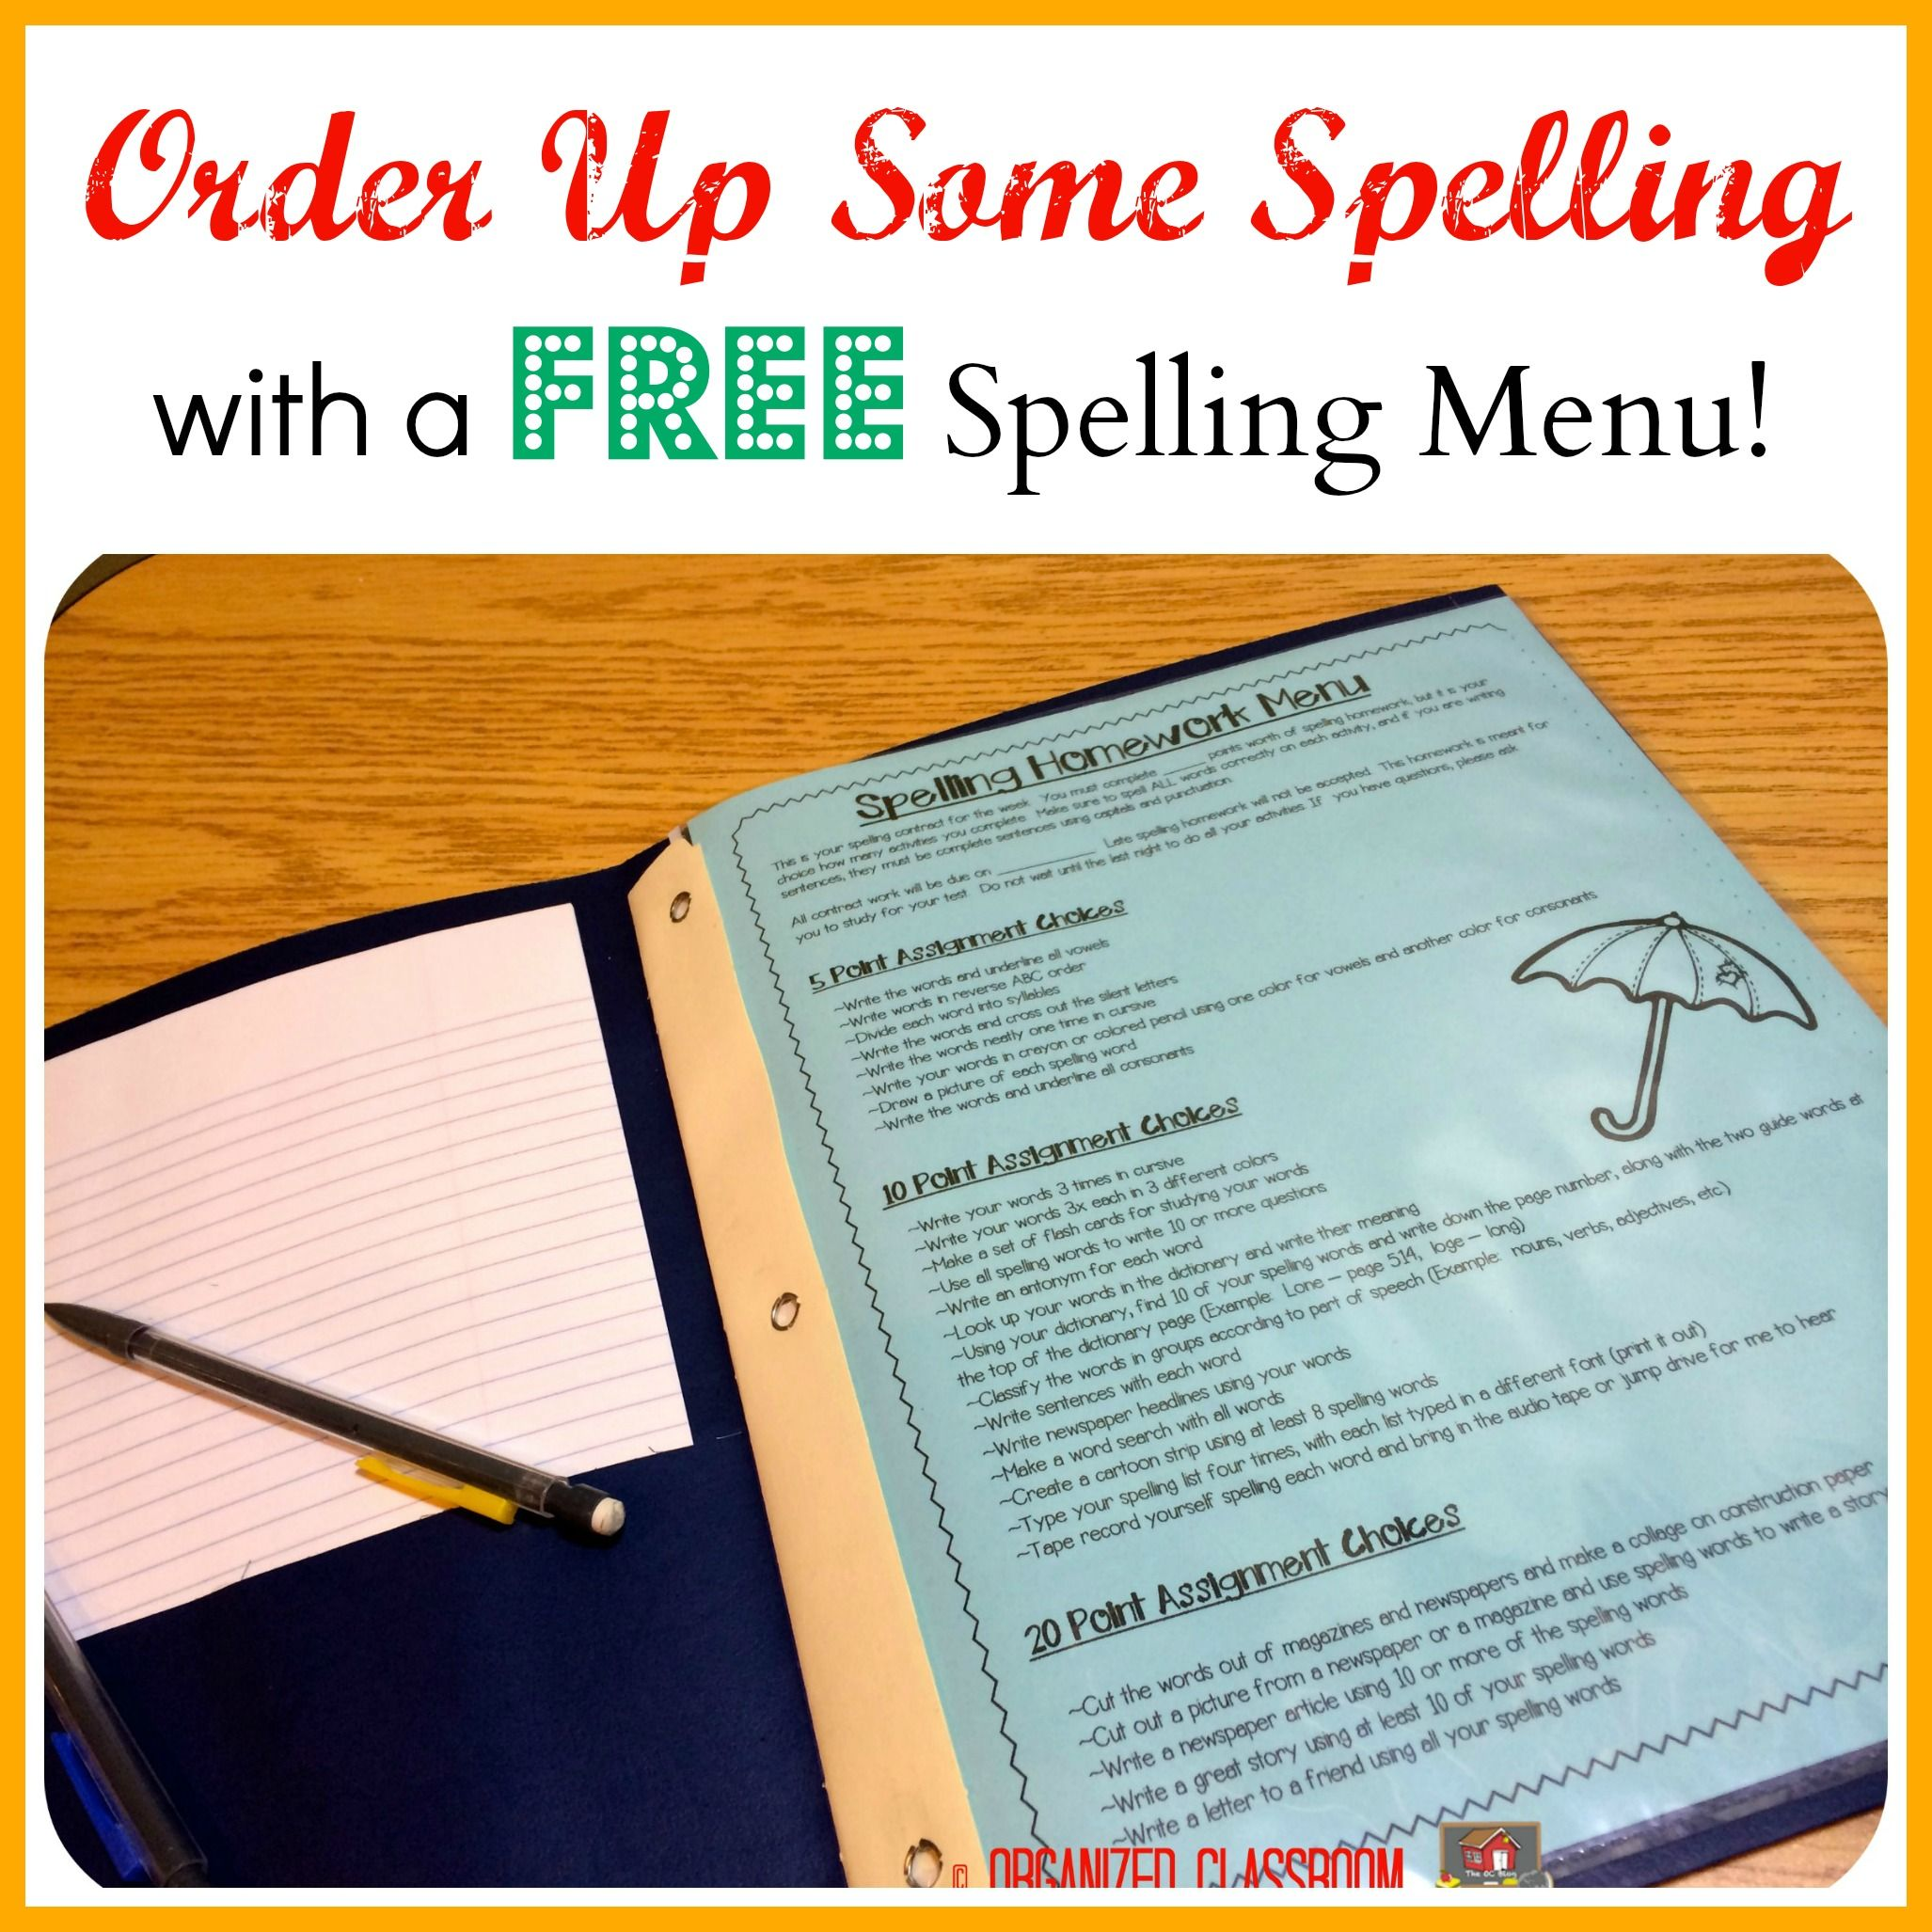 Order Up Some Spelling